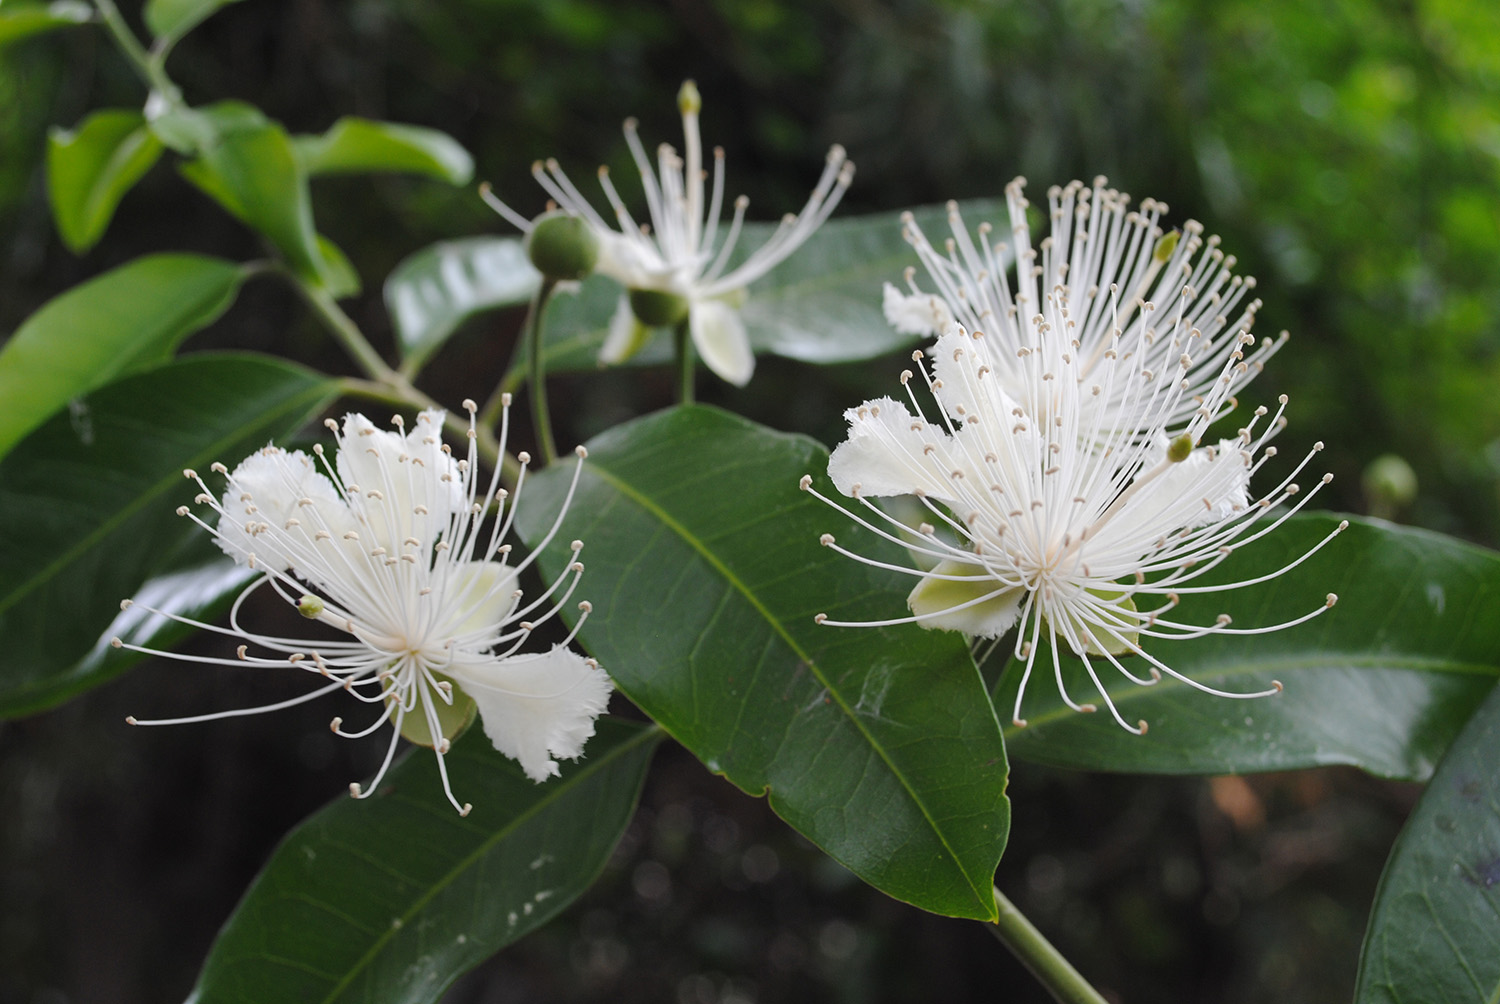 Flowers of Capparis arborea